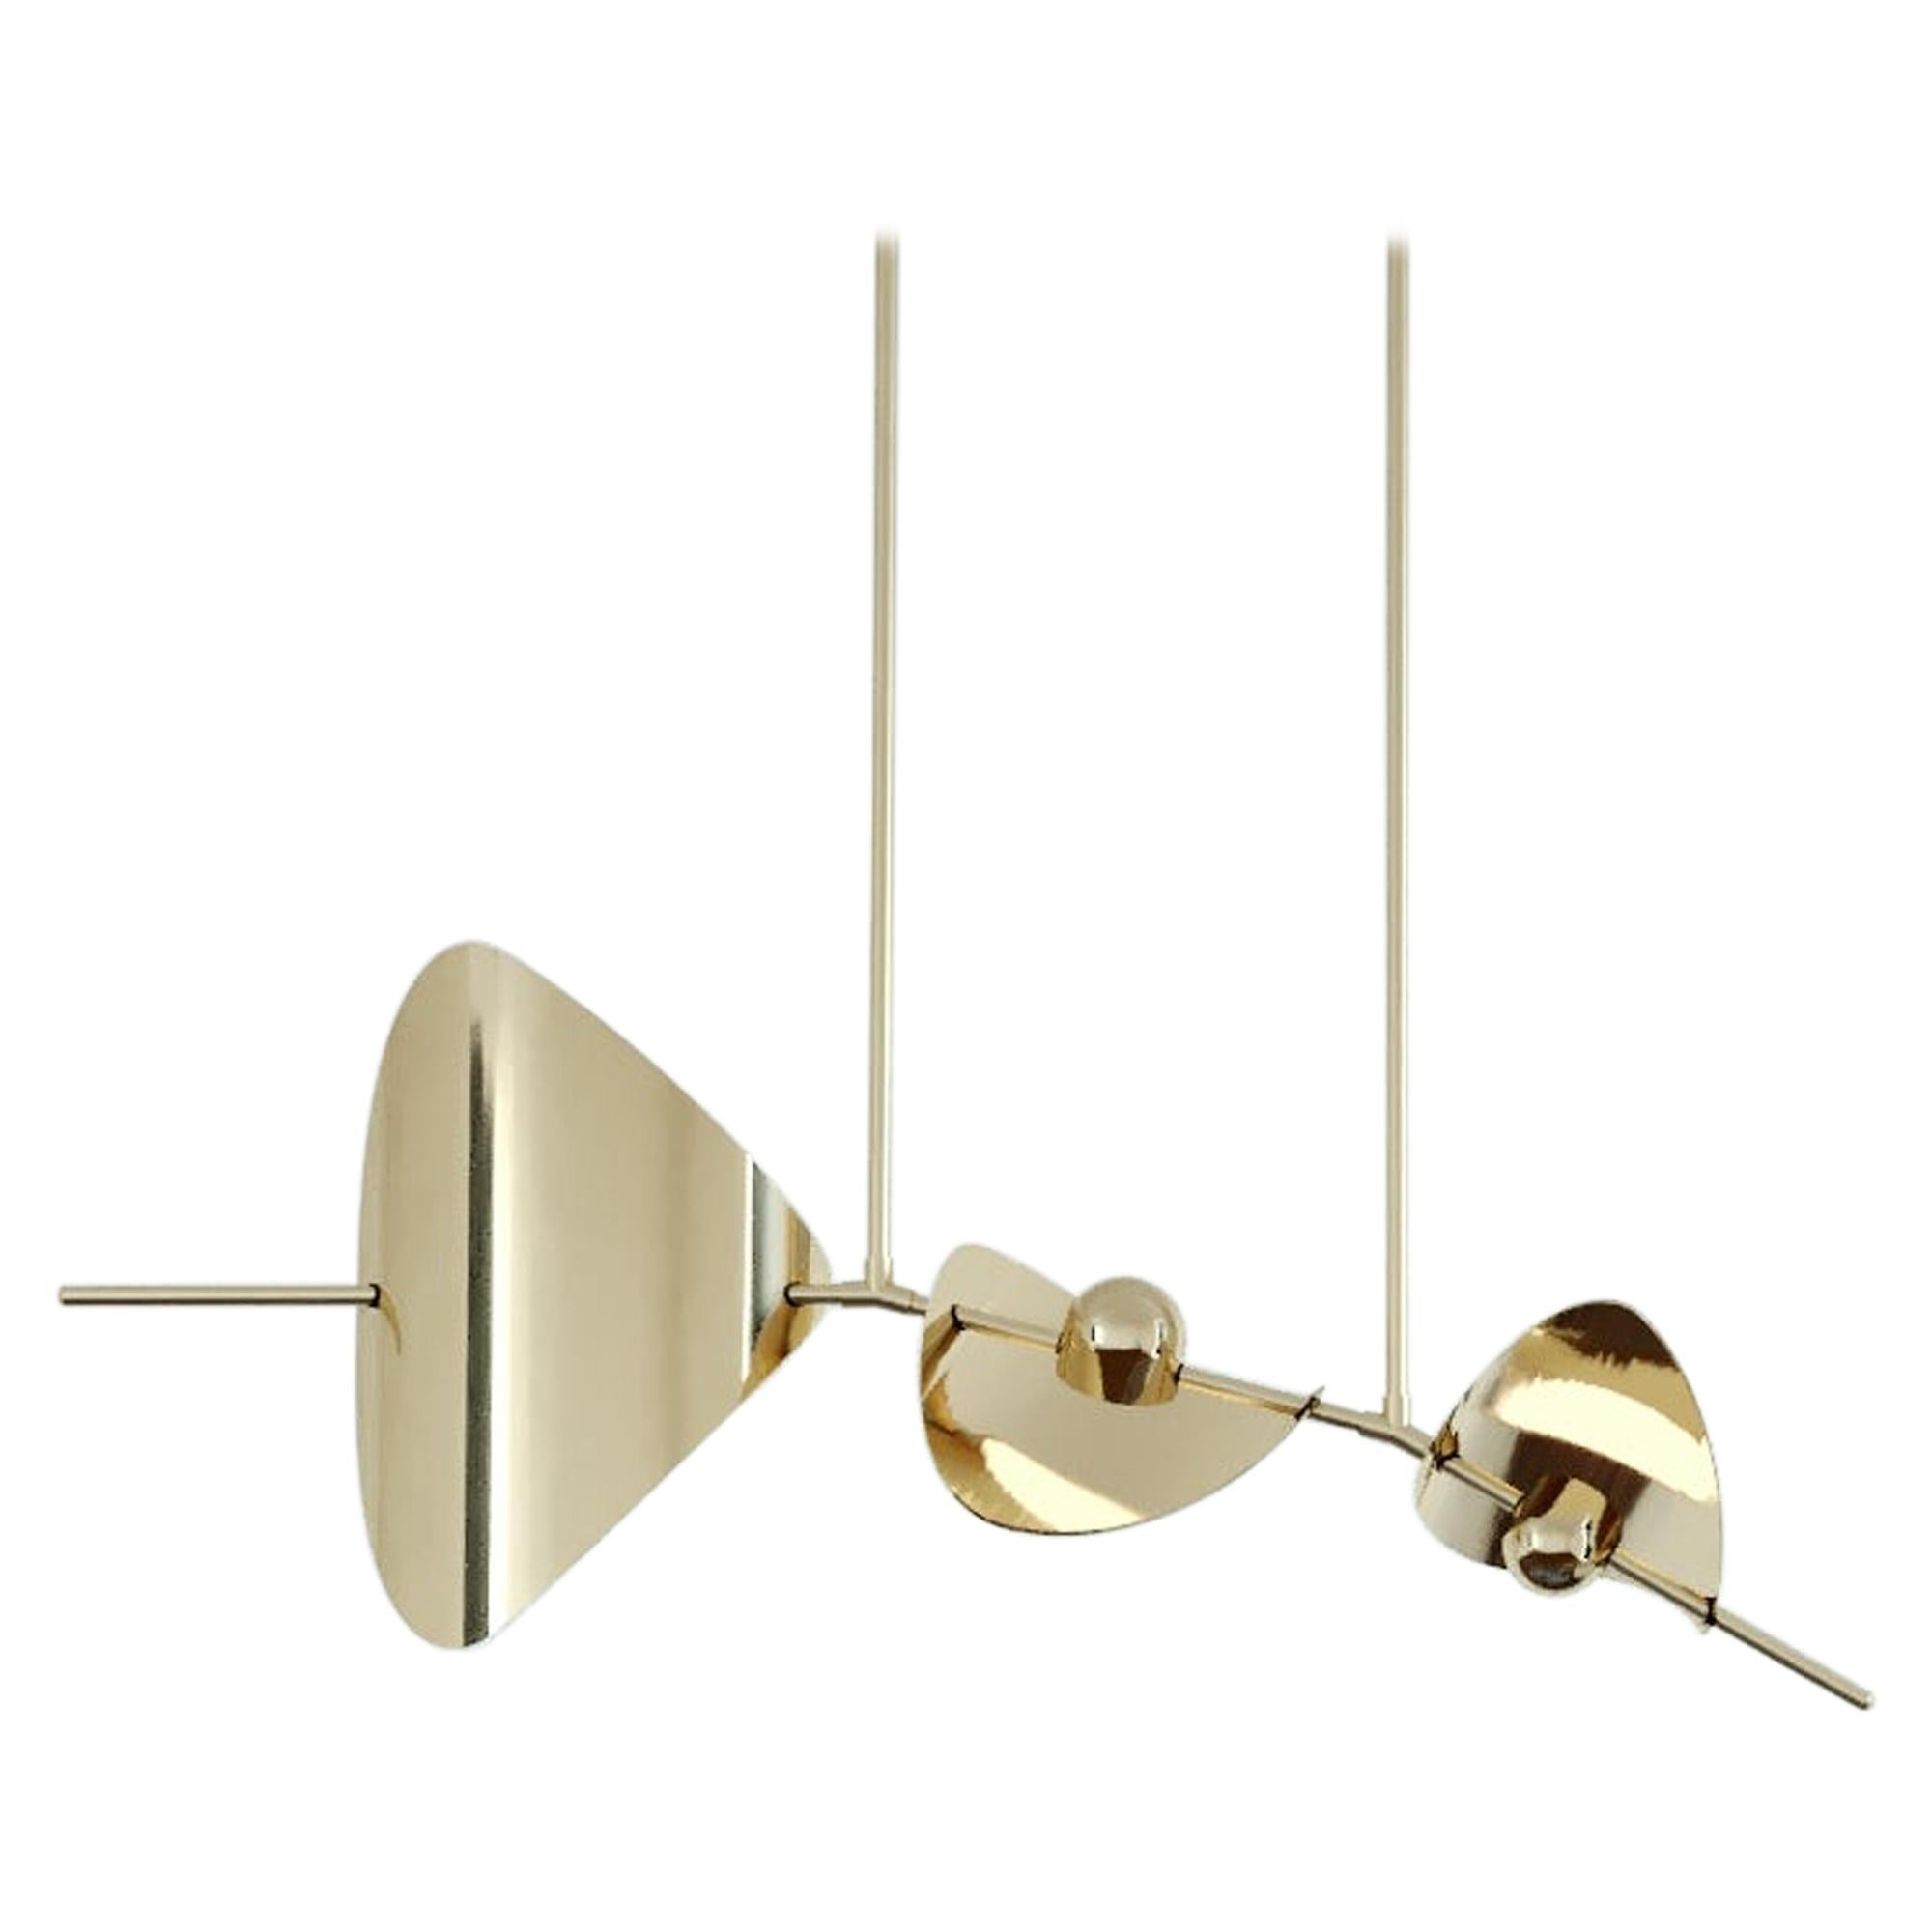 Bonnie Config 3 Contemporary LED Chandelier, Brass or Nickel, Large, Art